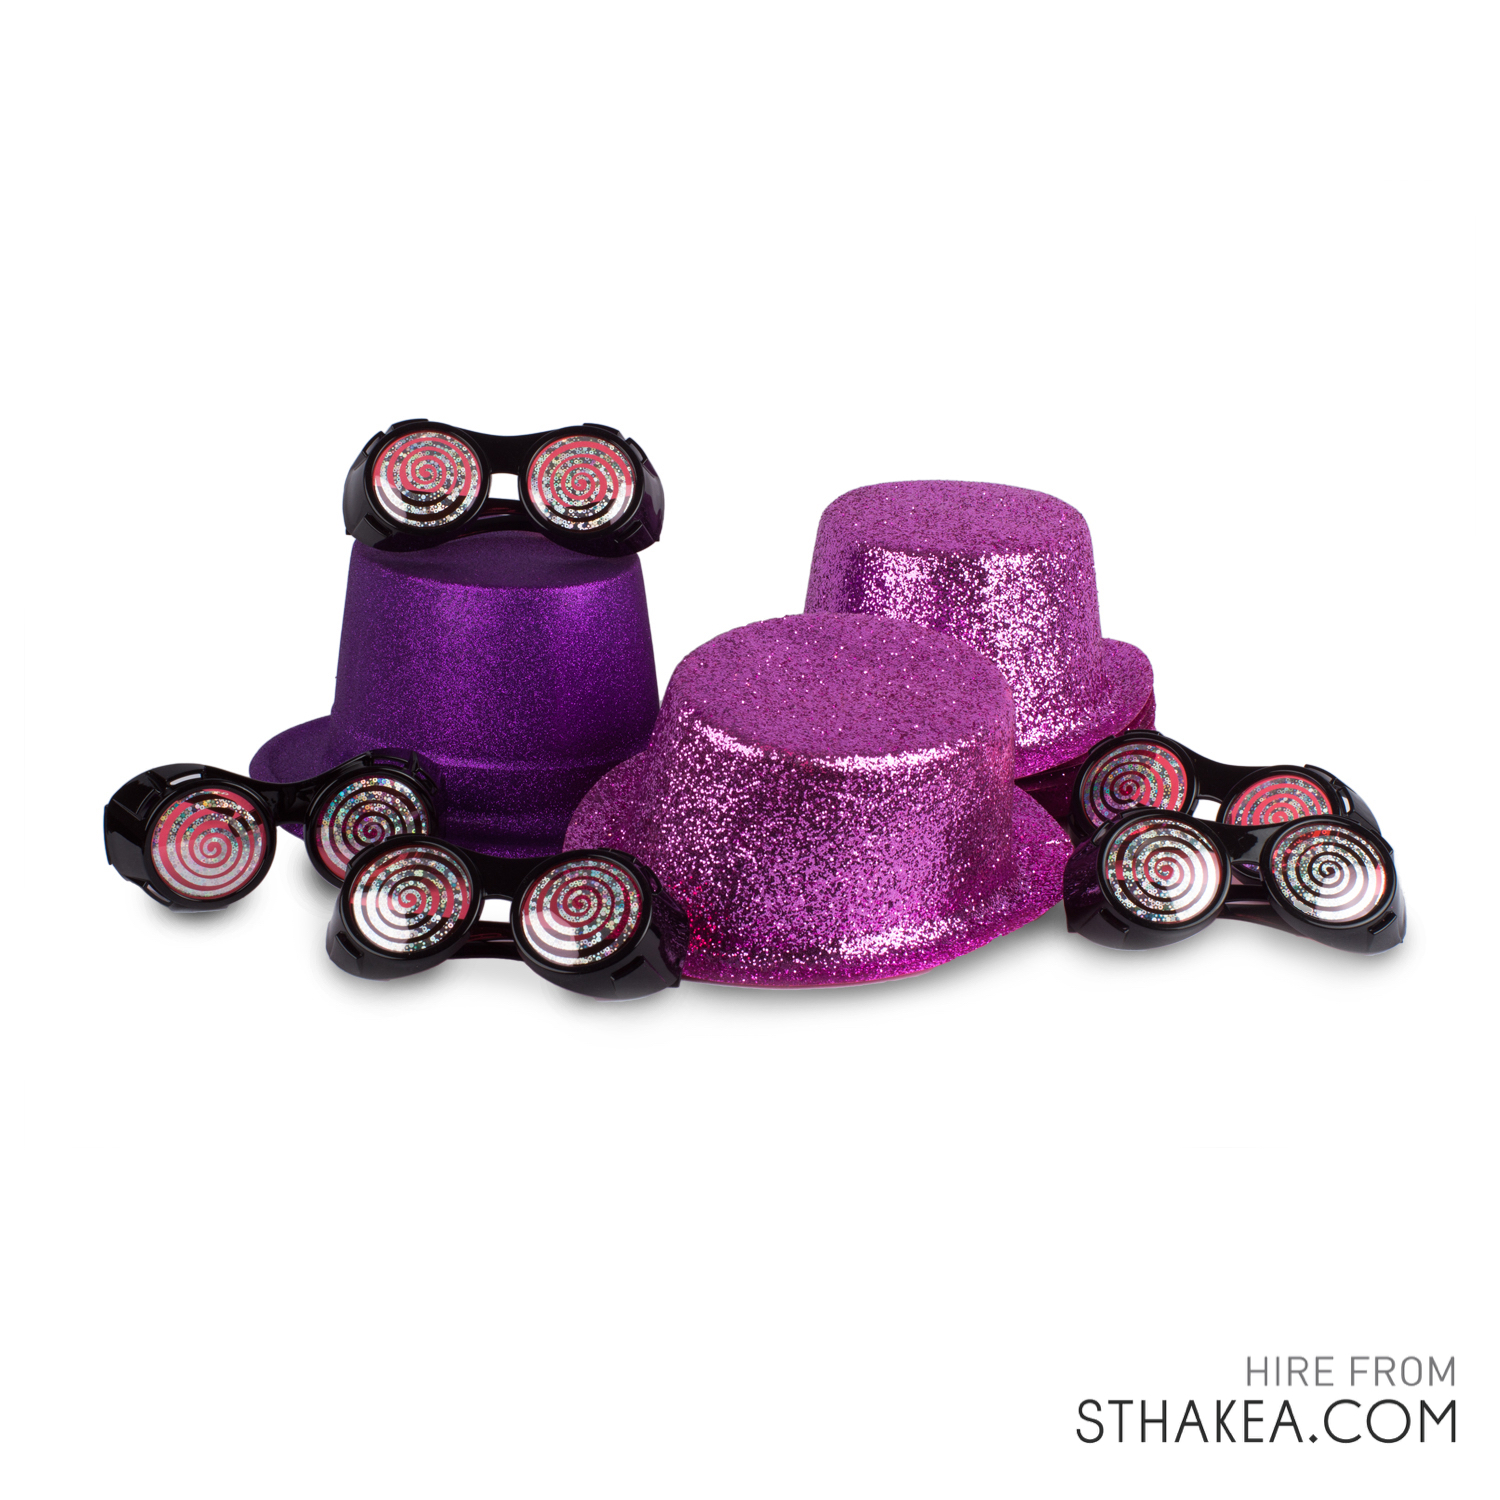 St-Hakea-Melbourne-Event-Hire-Willy-Wonka-Collection.jpg